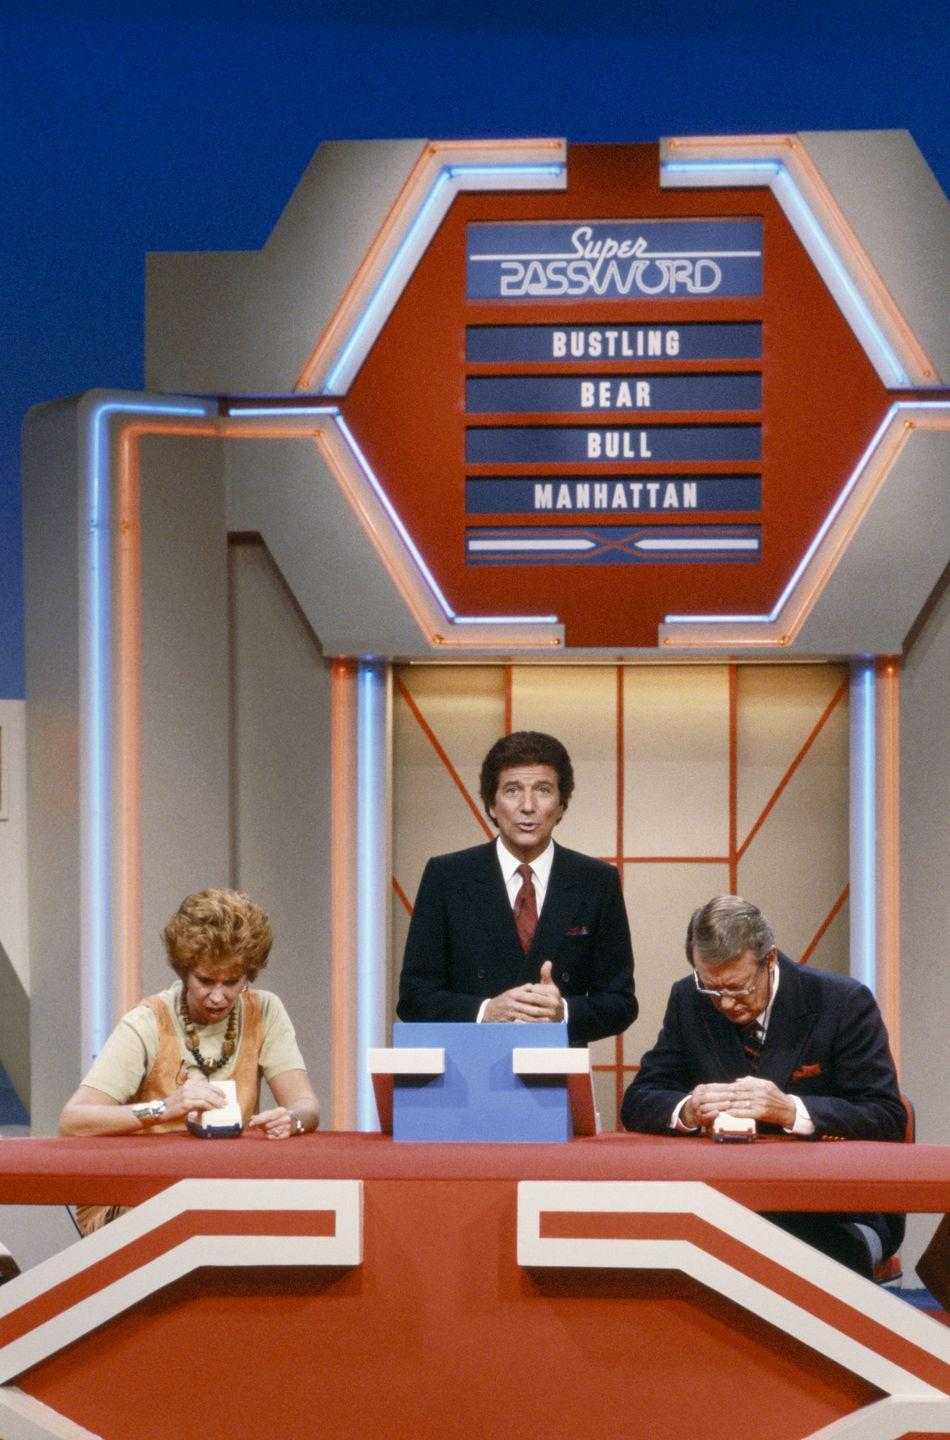 <p>The show debuted on primetime in 1961 with two teams, each one consisting of a celebrity and a contestant. The premise is for each guest to try to get the other player to guess words using one-word clues. It remained successful in primetime off and on until 1975. <em>Password </em>had a few revivals, the most recent one being <em>Million Dollar Password </em>in 2008.</p>